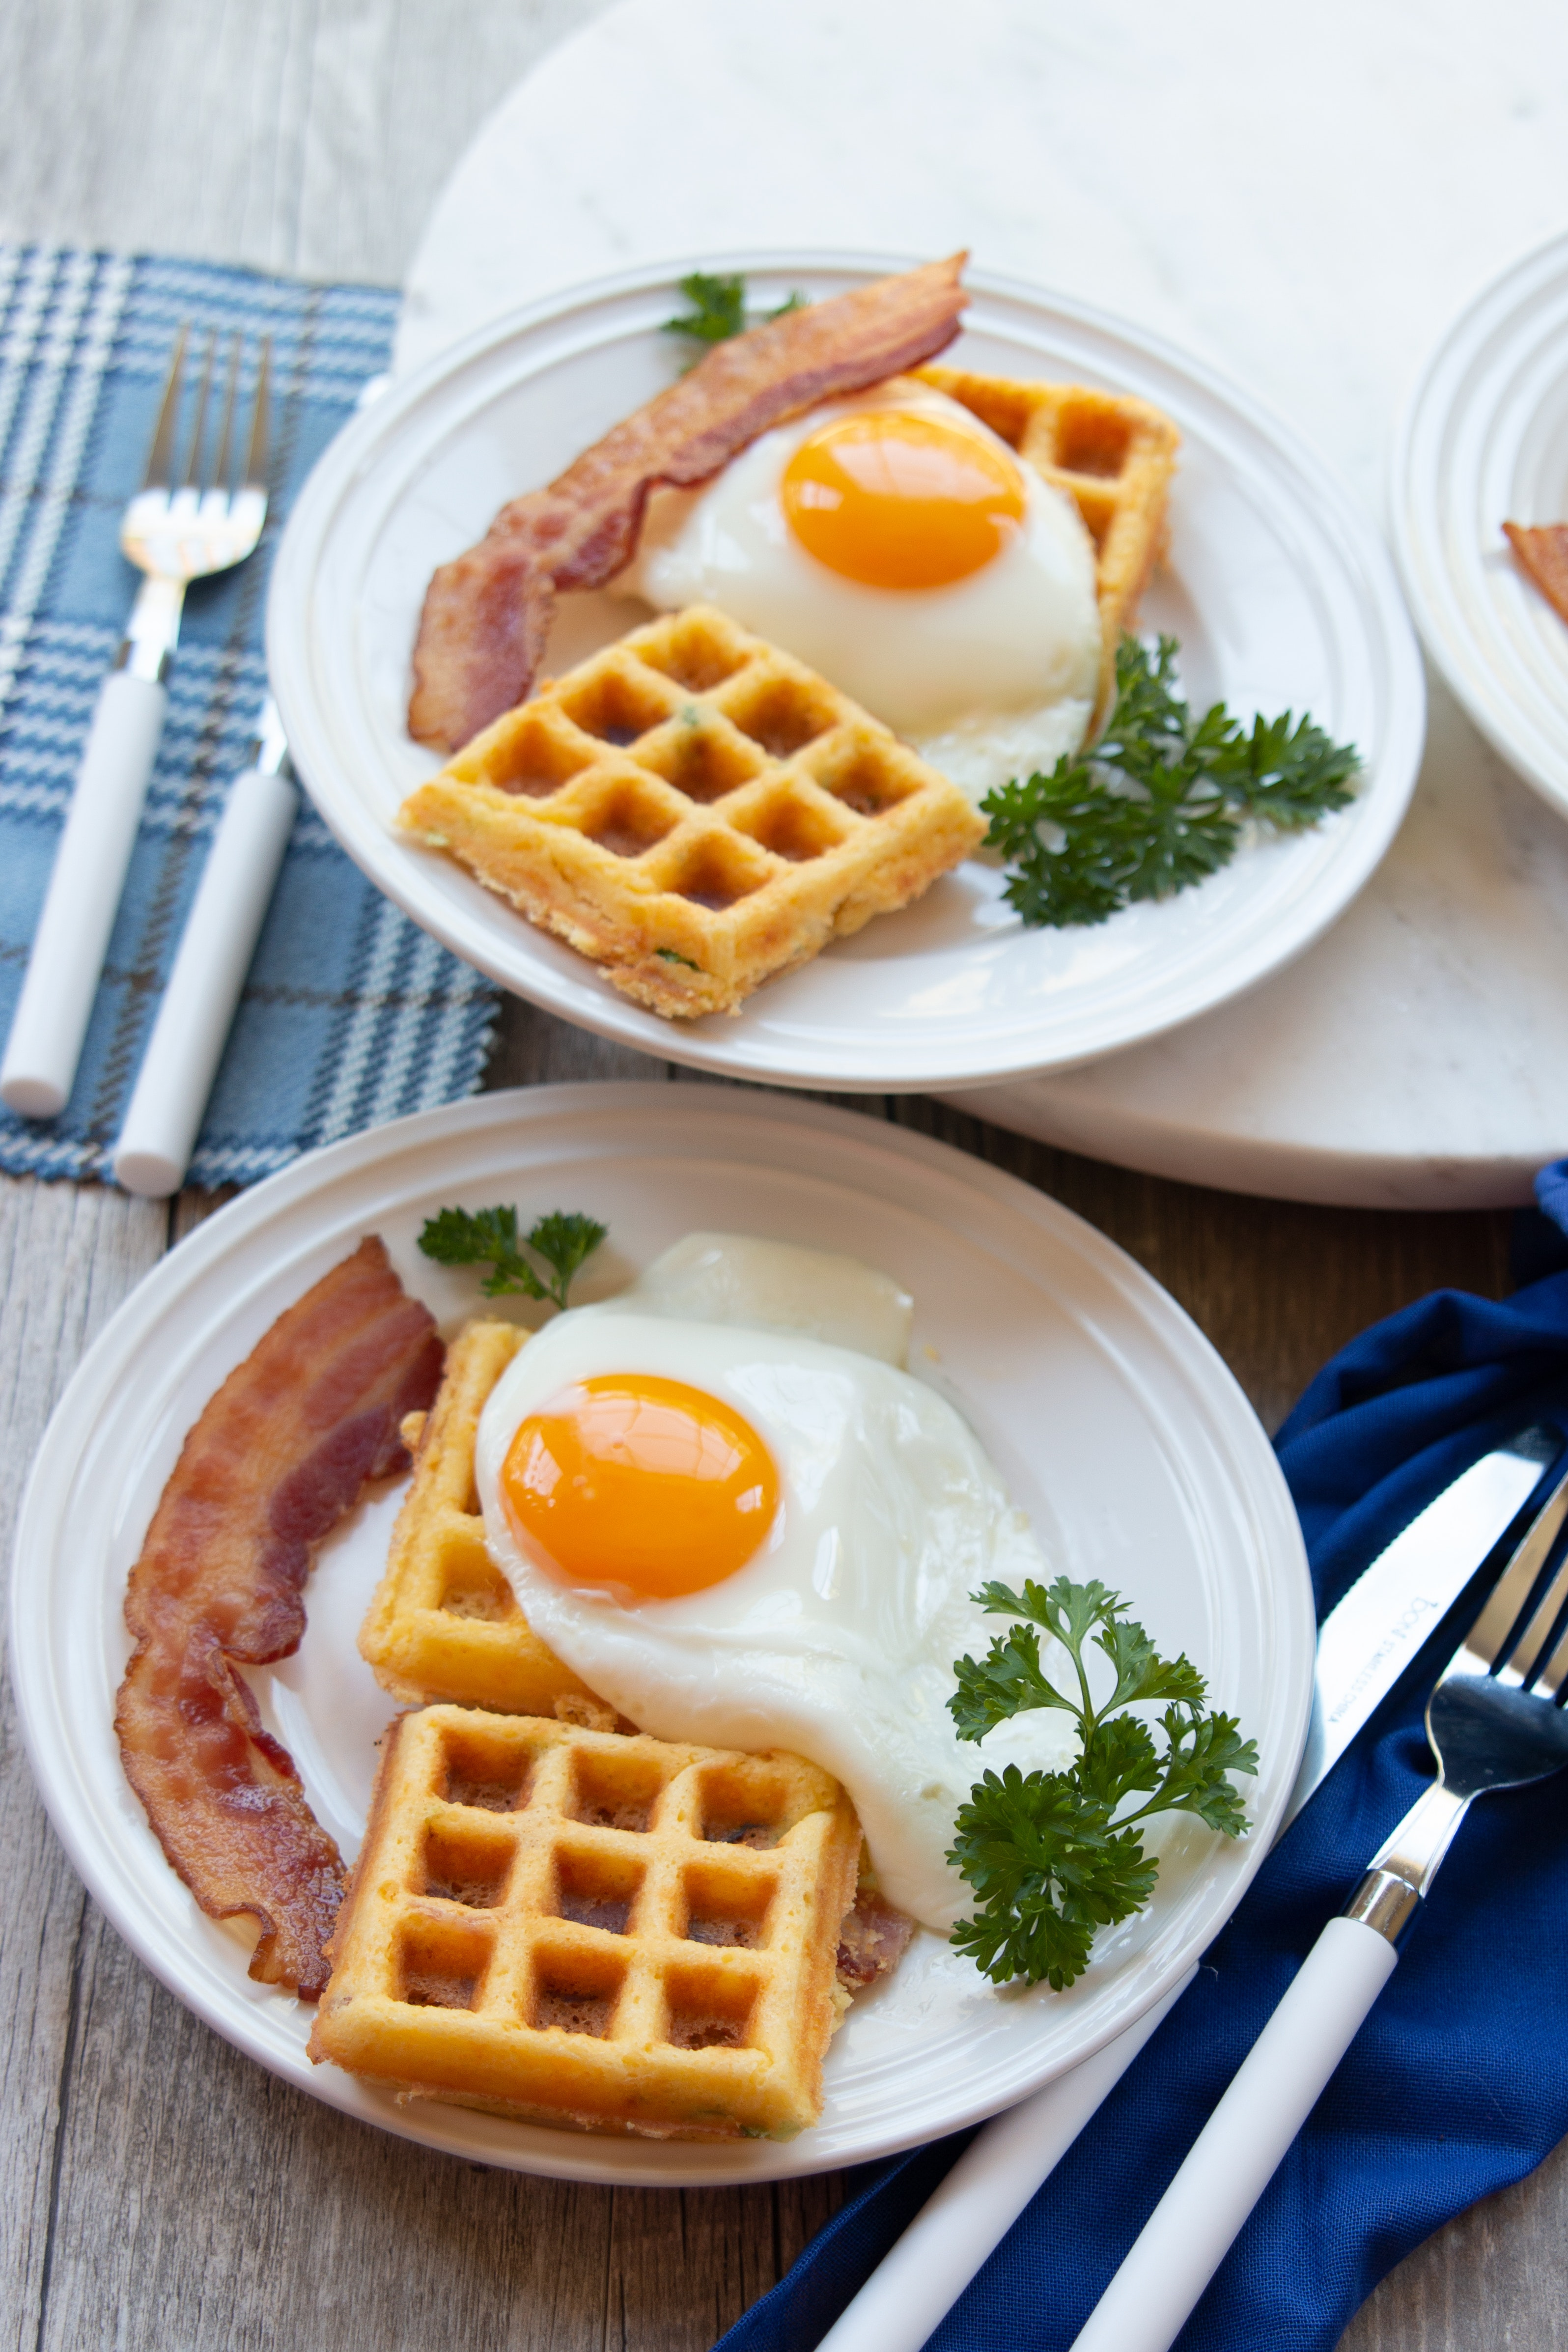 What to make for breakfast on a keto diet